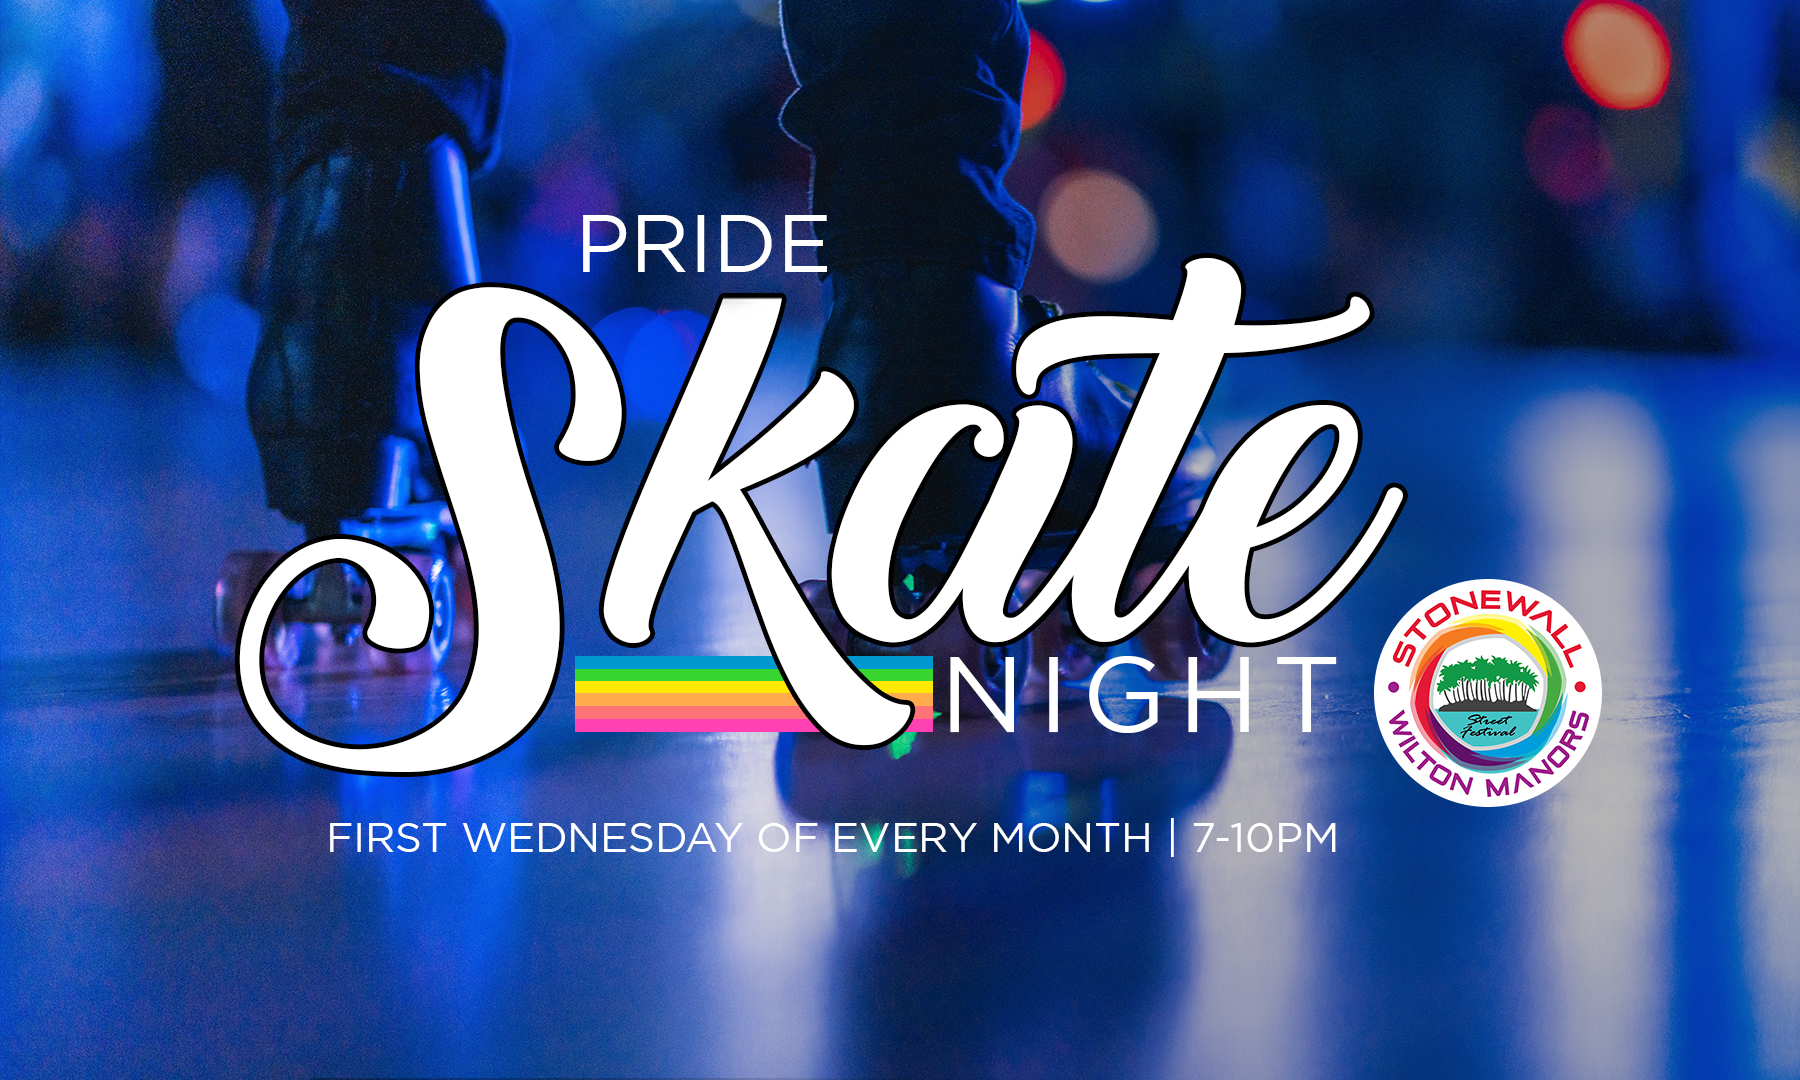 Pride Gay Skate Night 2020